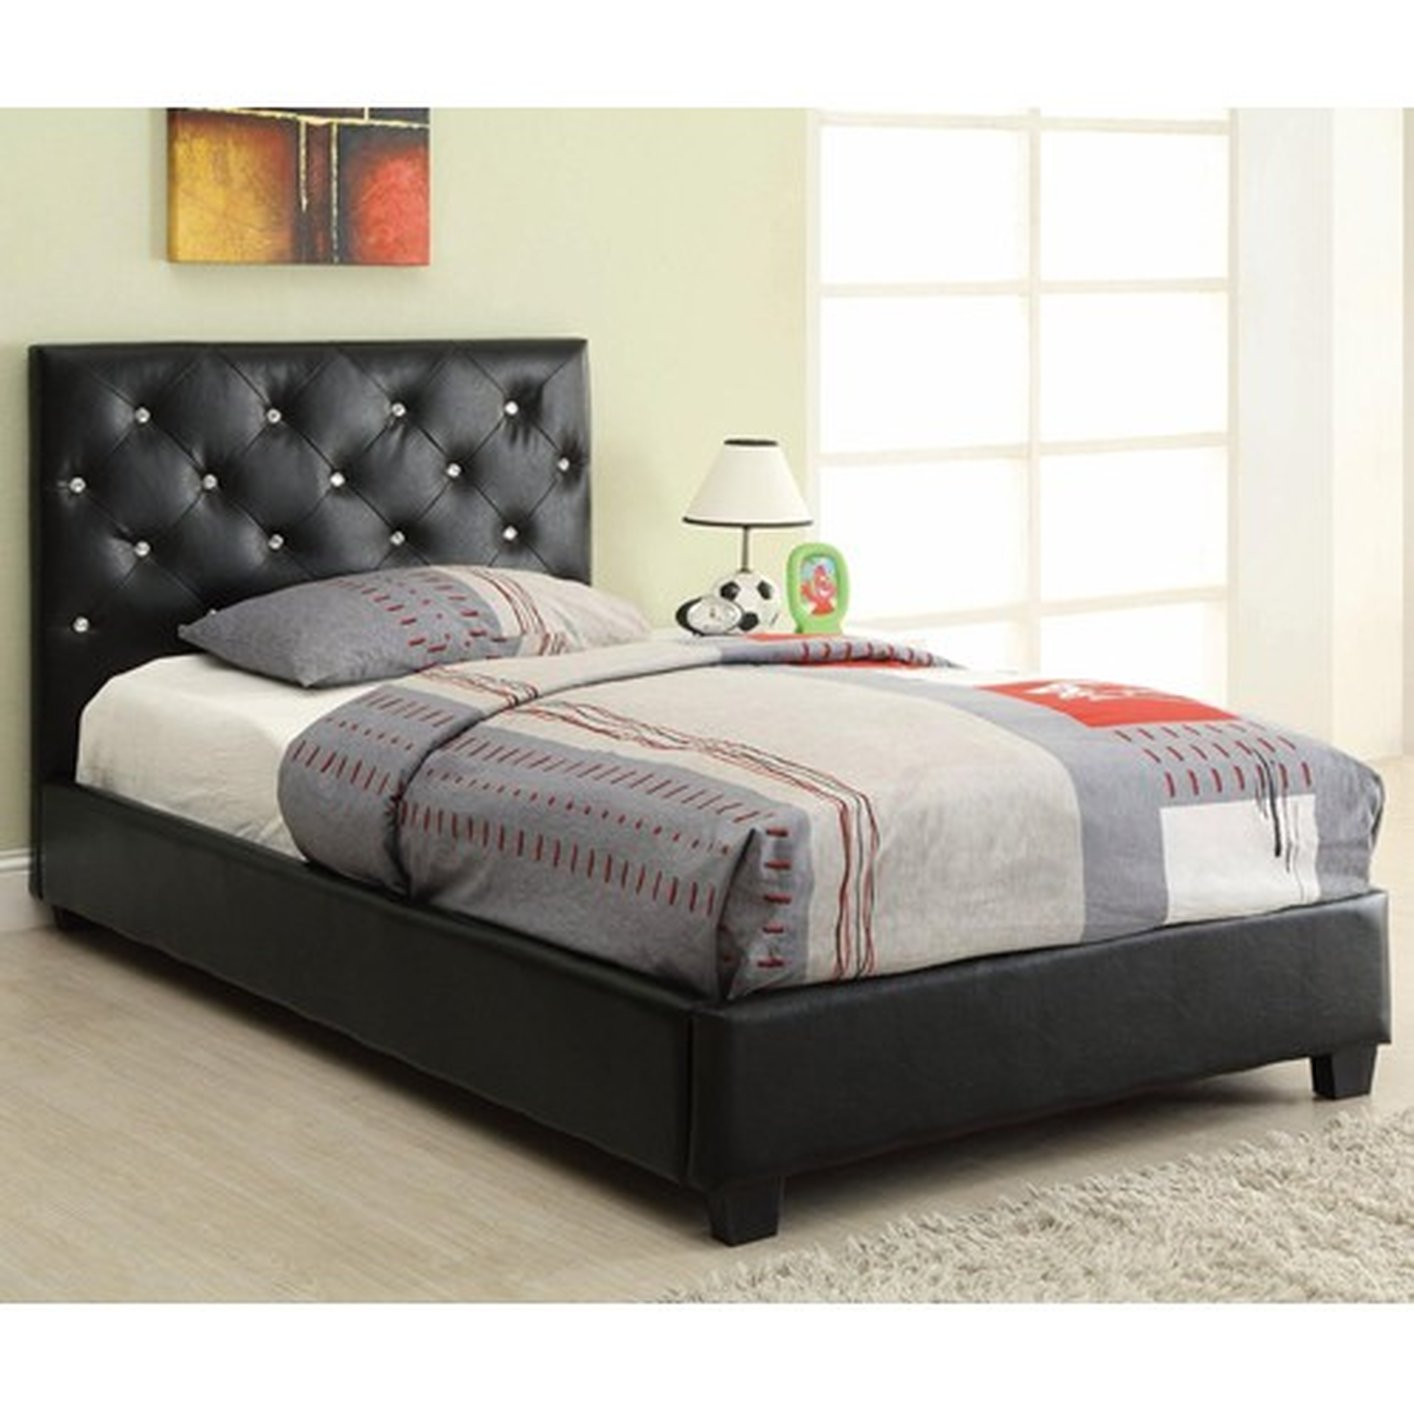 Coaster T Black Twin Size Leather Bed Steal A Sofa